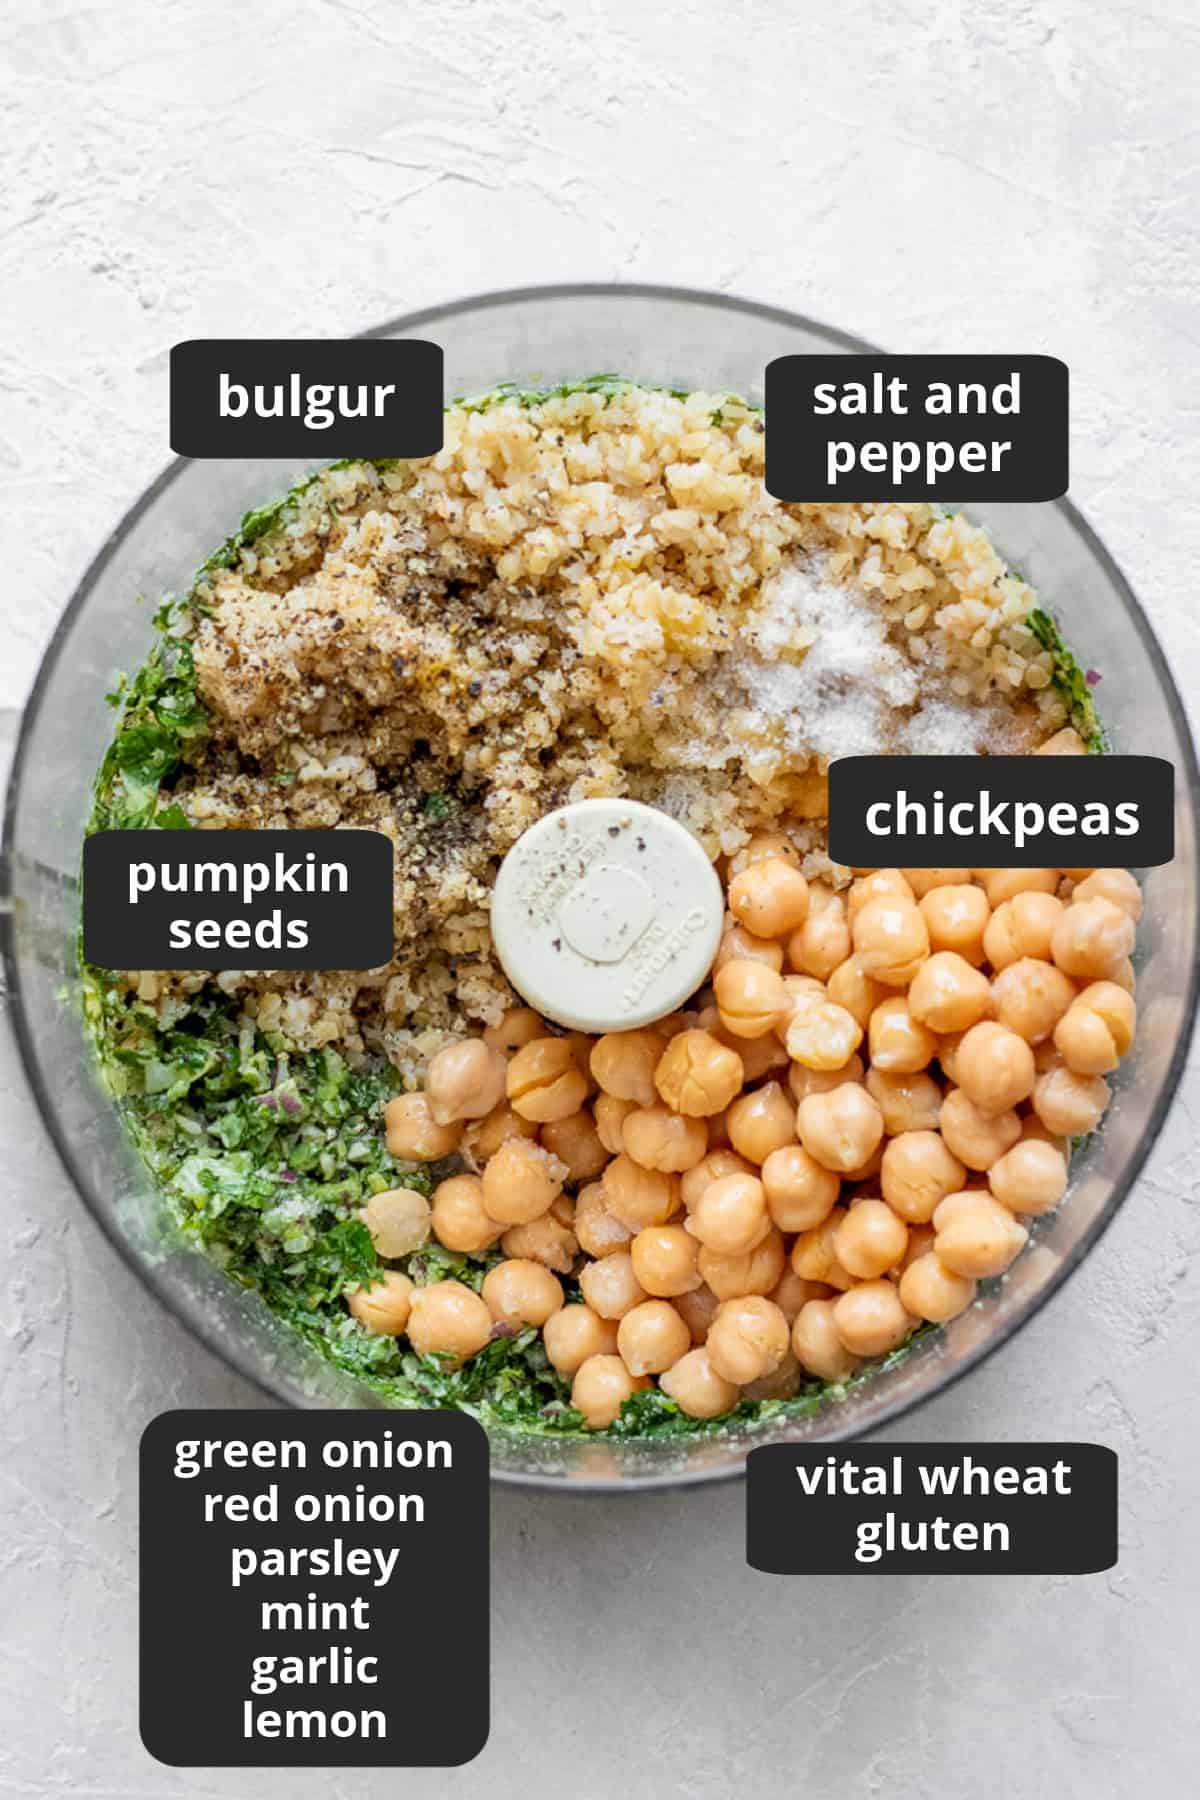 labeled photo of ingredients inside food processor bowl.